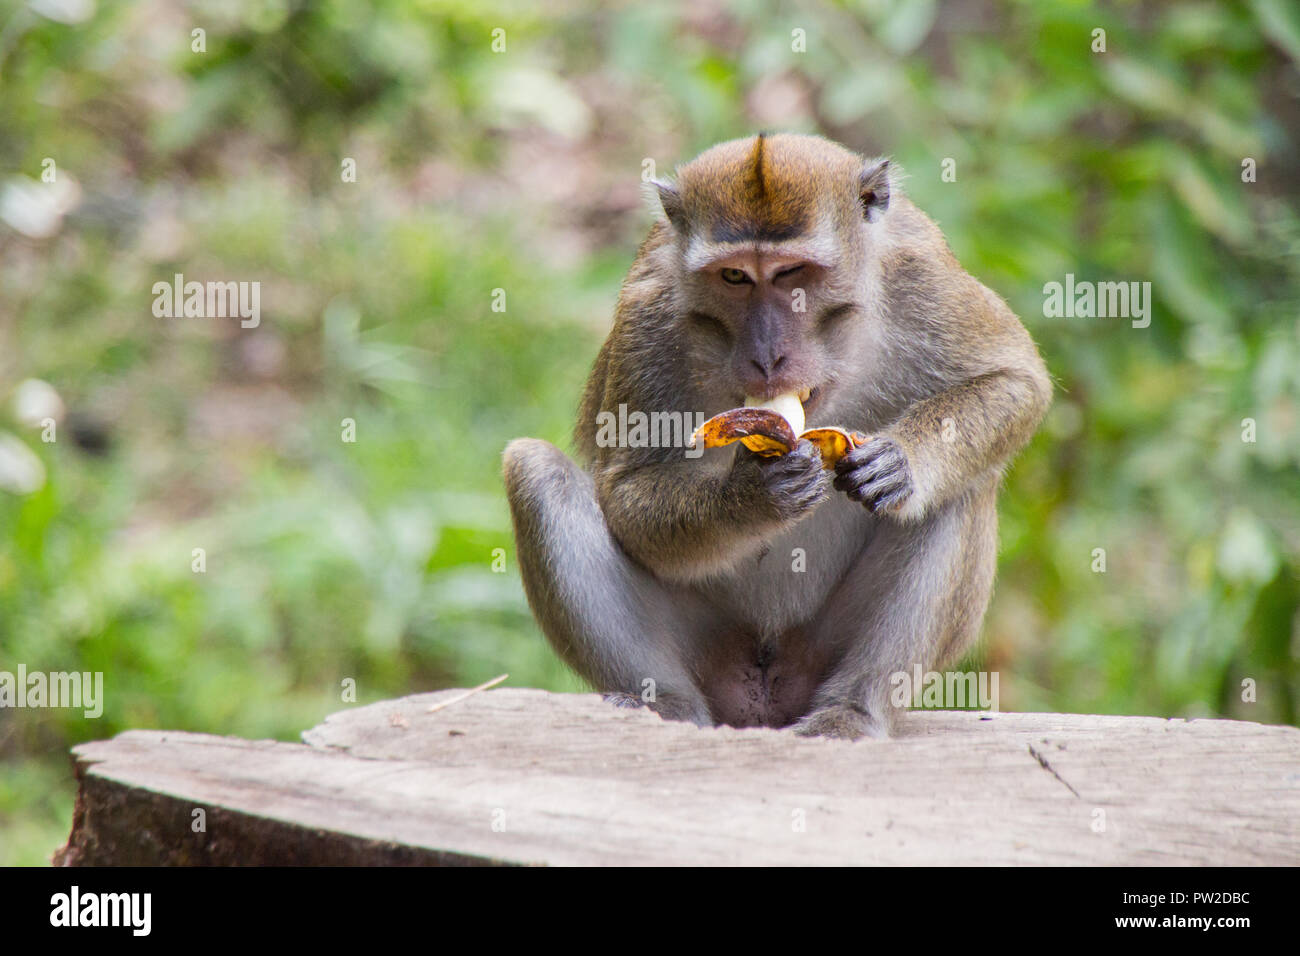 Macaques on the island of Borneo - Stock Image